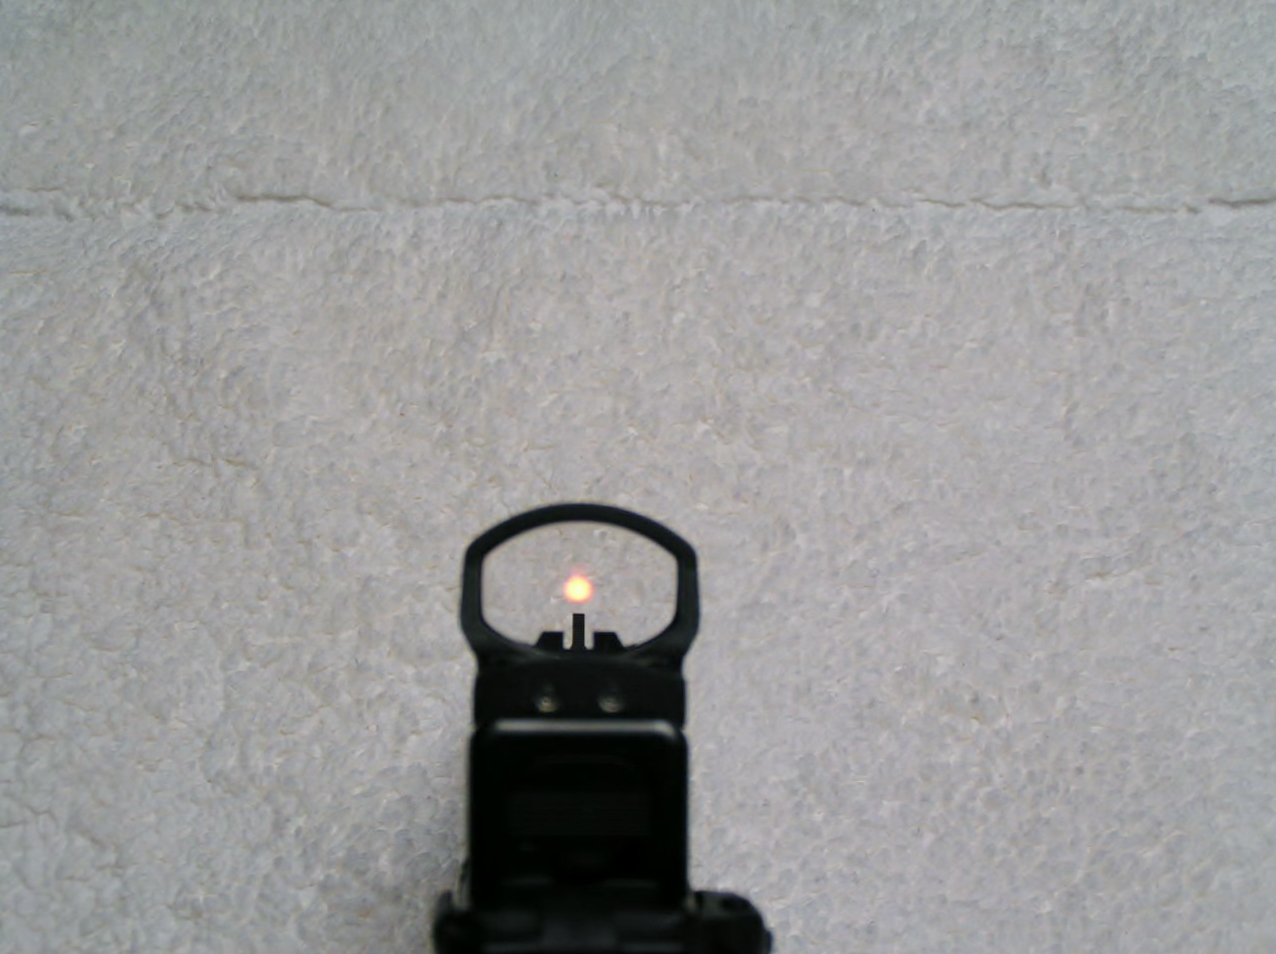 What is the Purpose of Using A Mini-Red Dot Sight On a Pistol: Combat?-pict0007.jpg